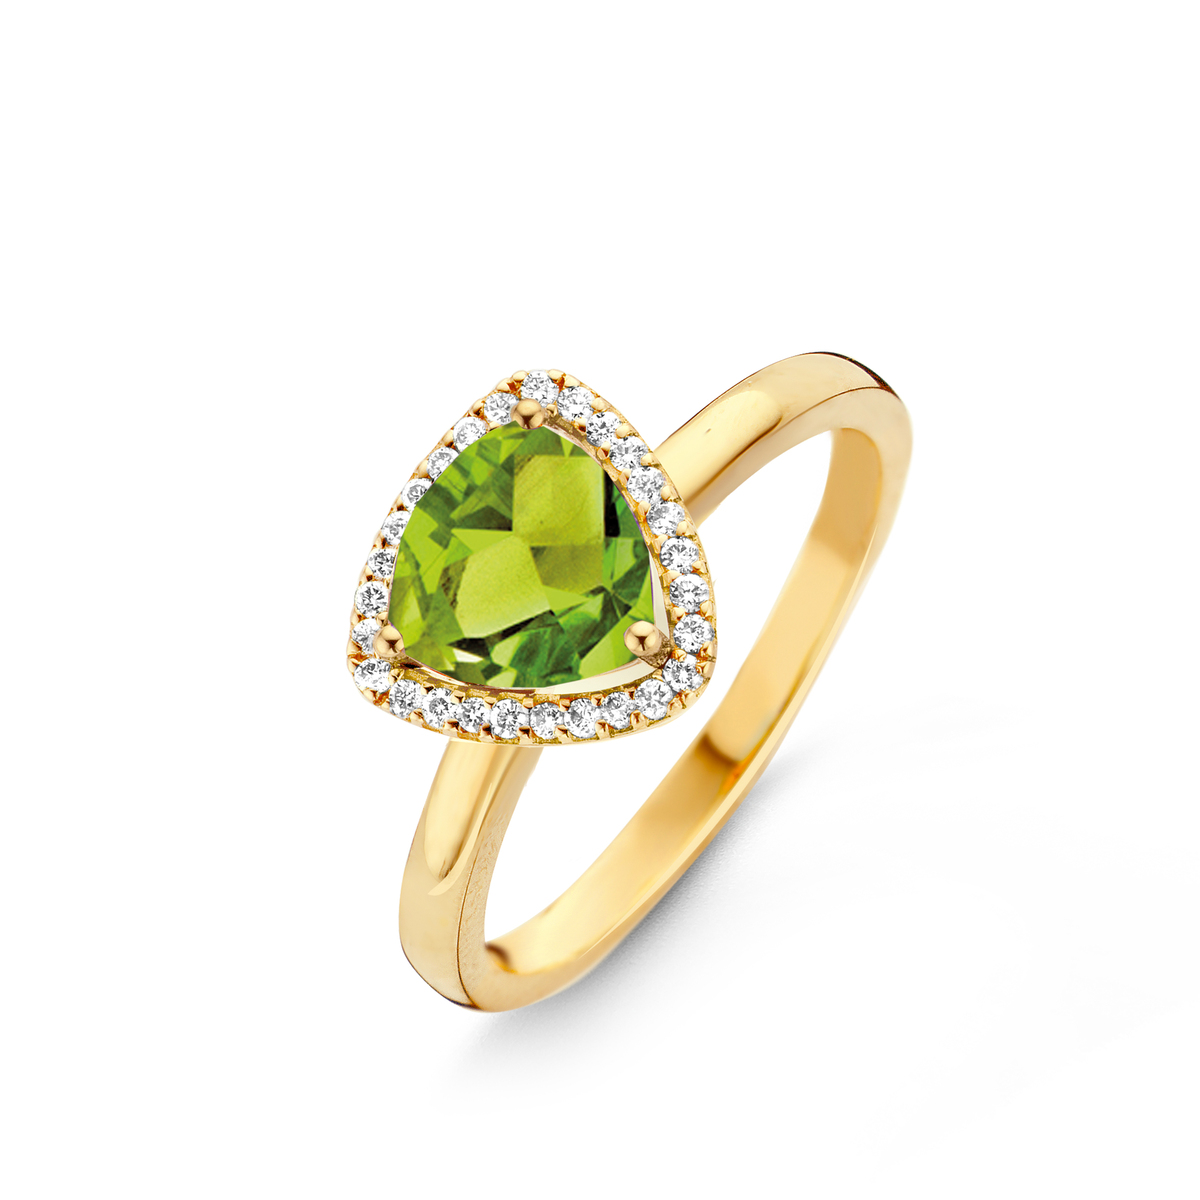 etna ring in yellow gold